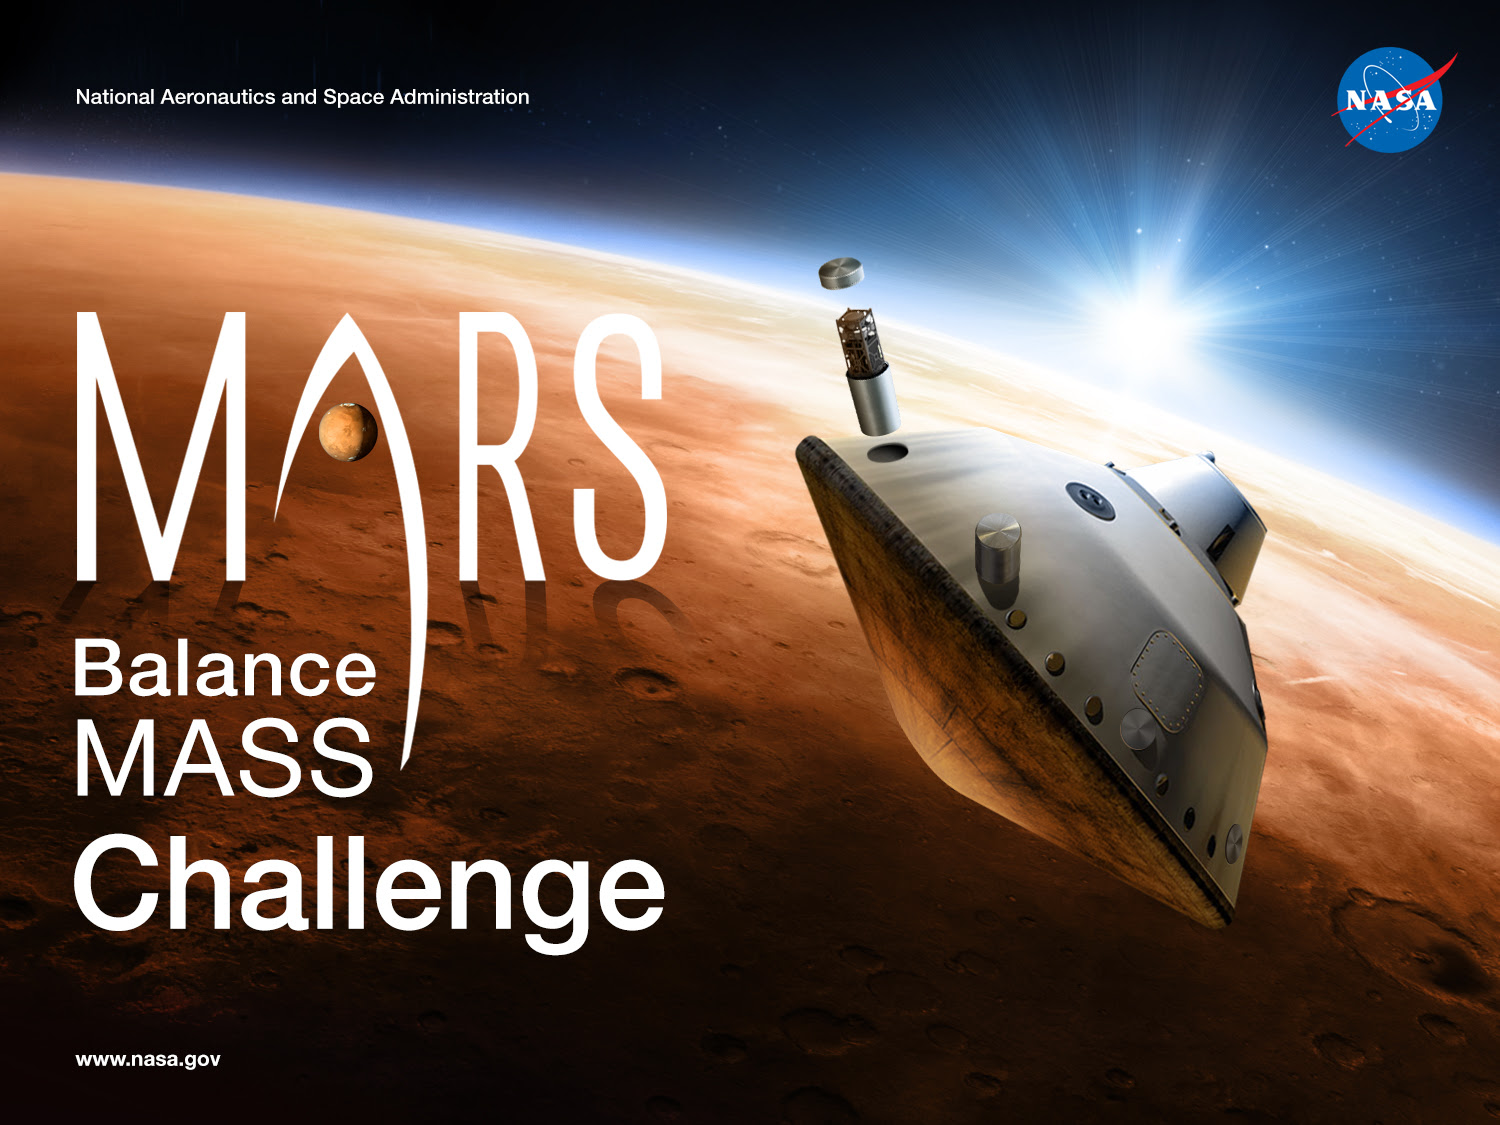 http://www.nasa.gov/sites/default/files/marsbalancechallenge_0.jpg